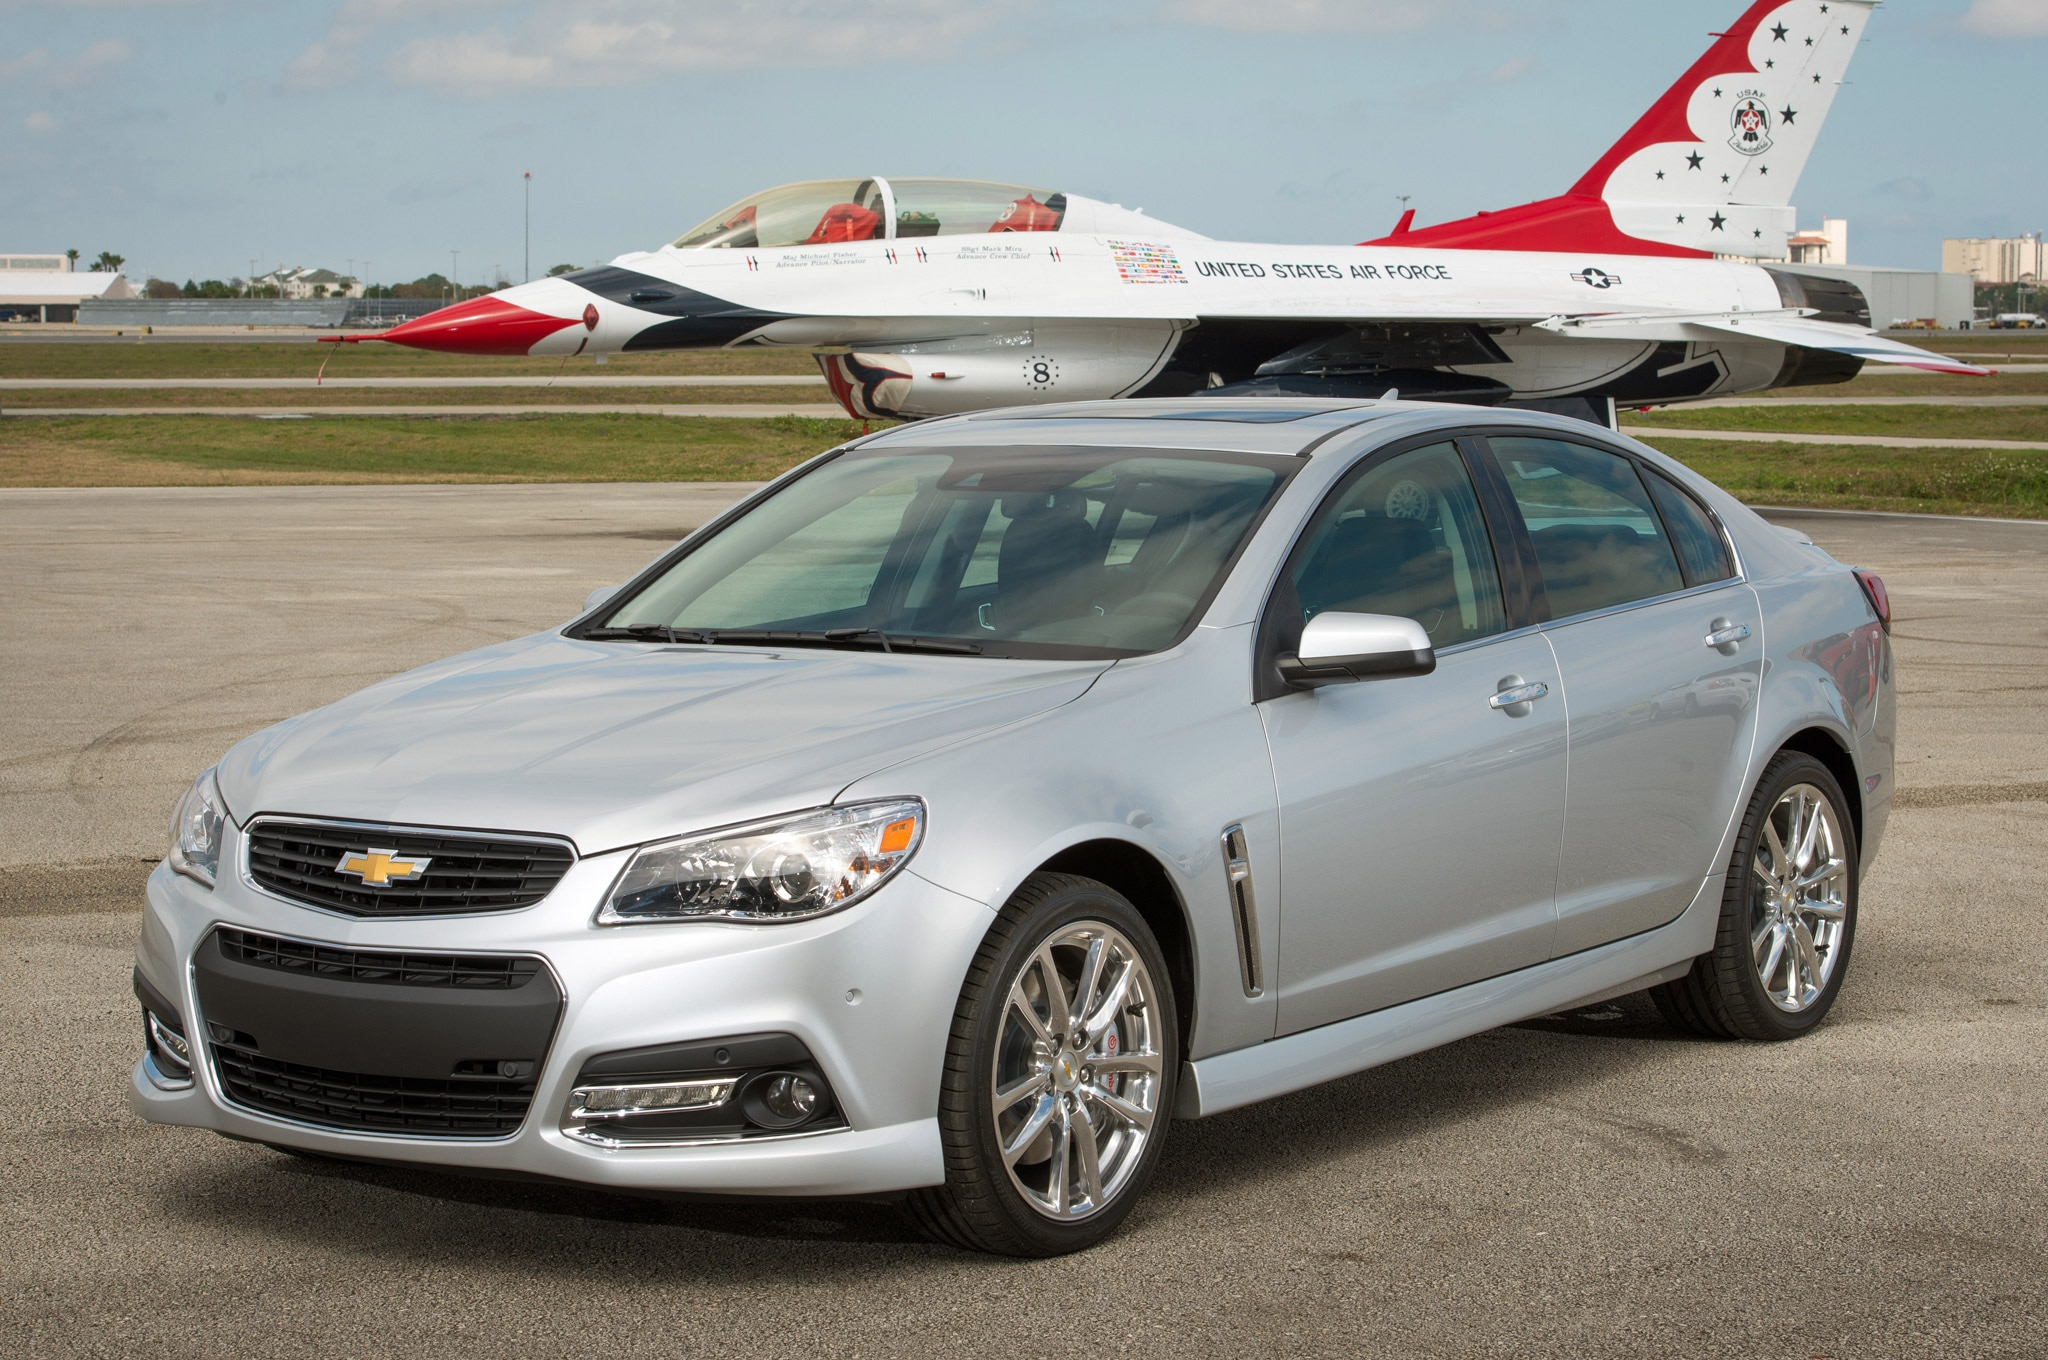 2014 Chevrolet SS Front Three Quarter With Plane1